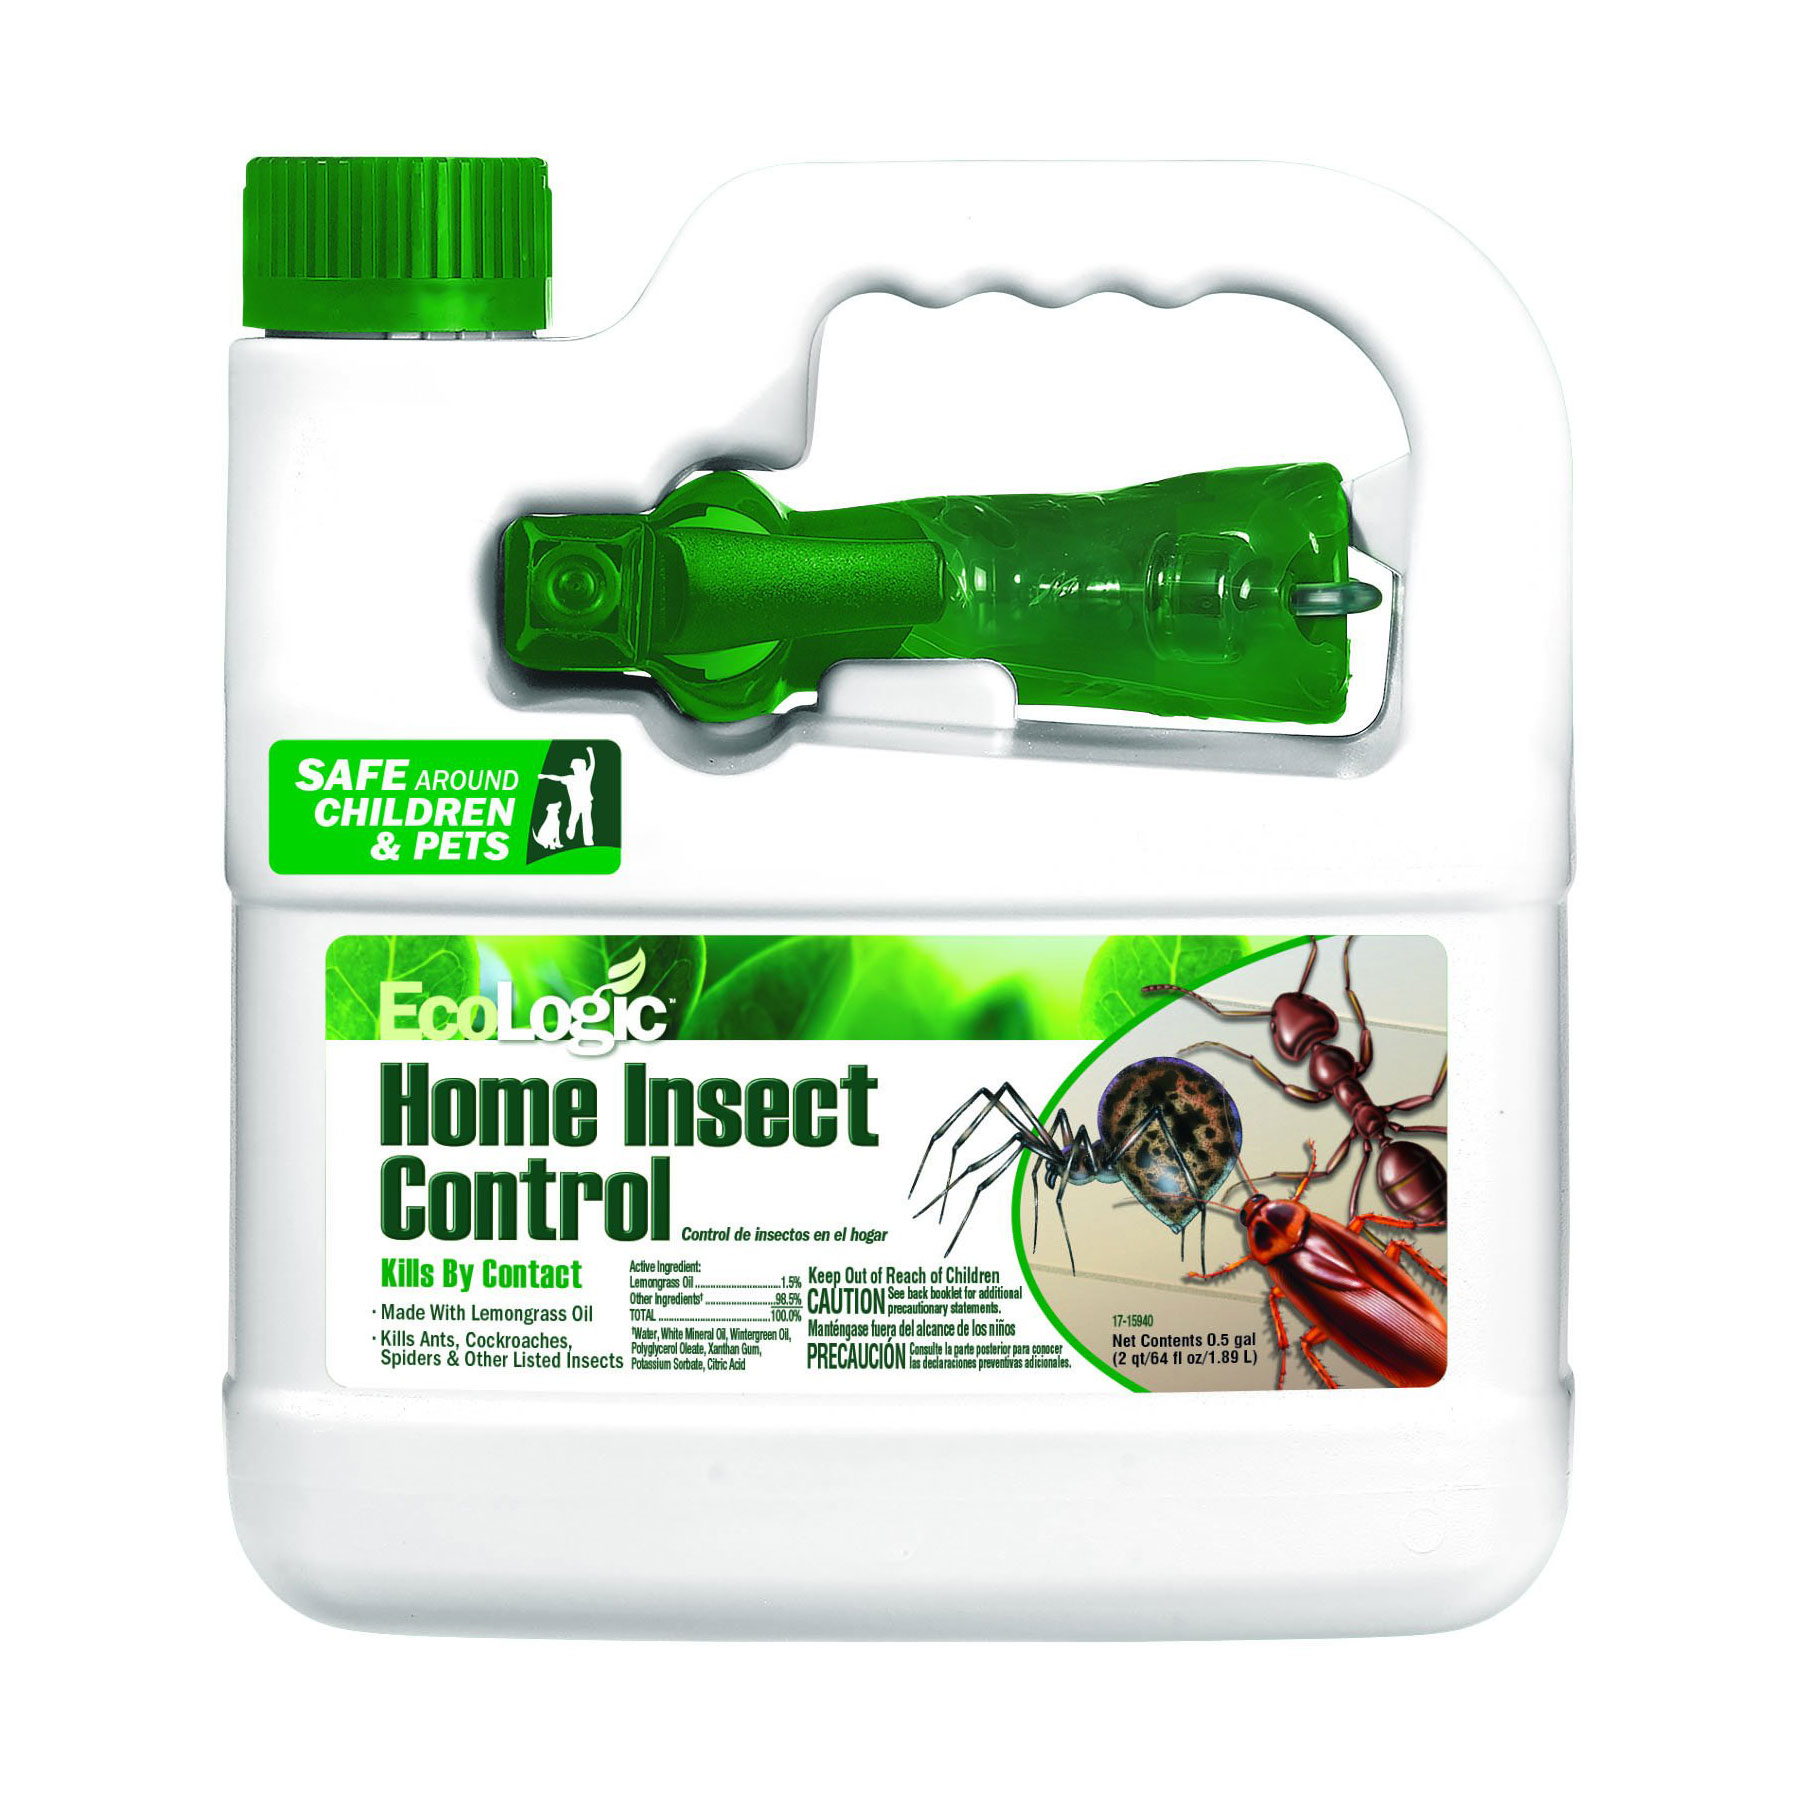 Ecologic Home Insect Killer for Do-It-Yourself Pest Control